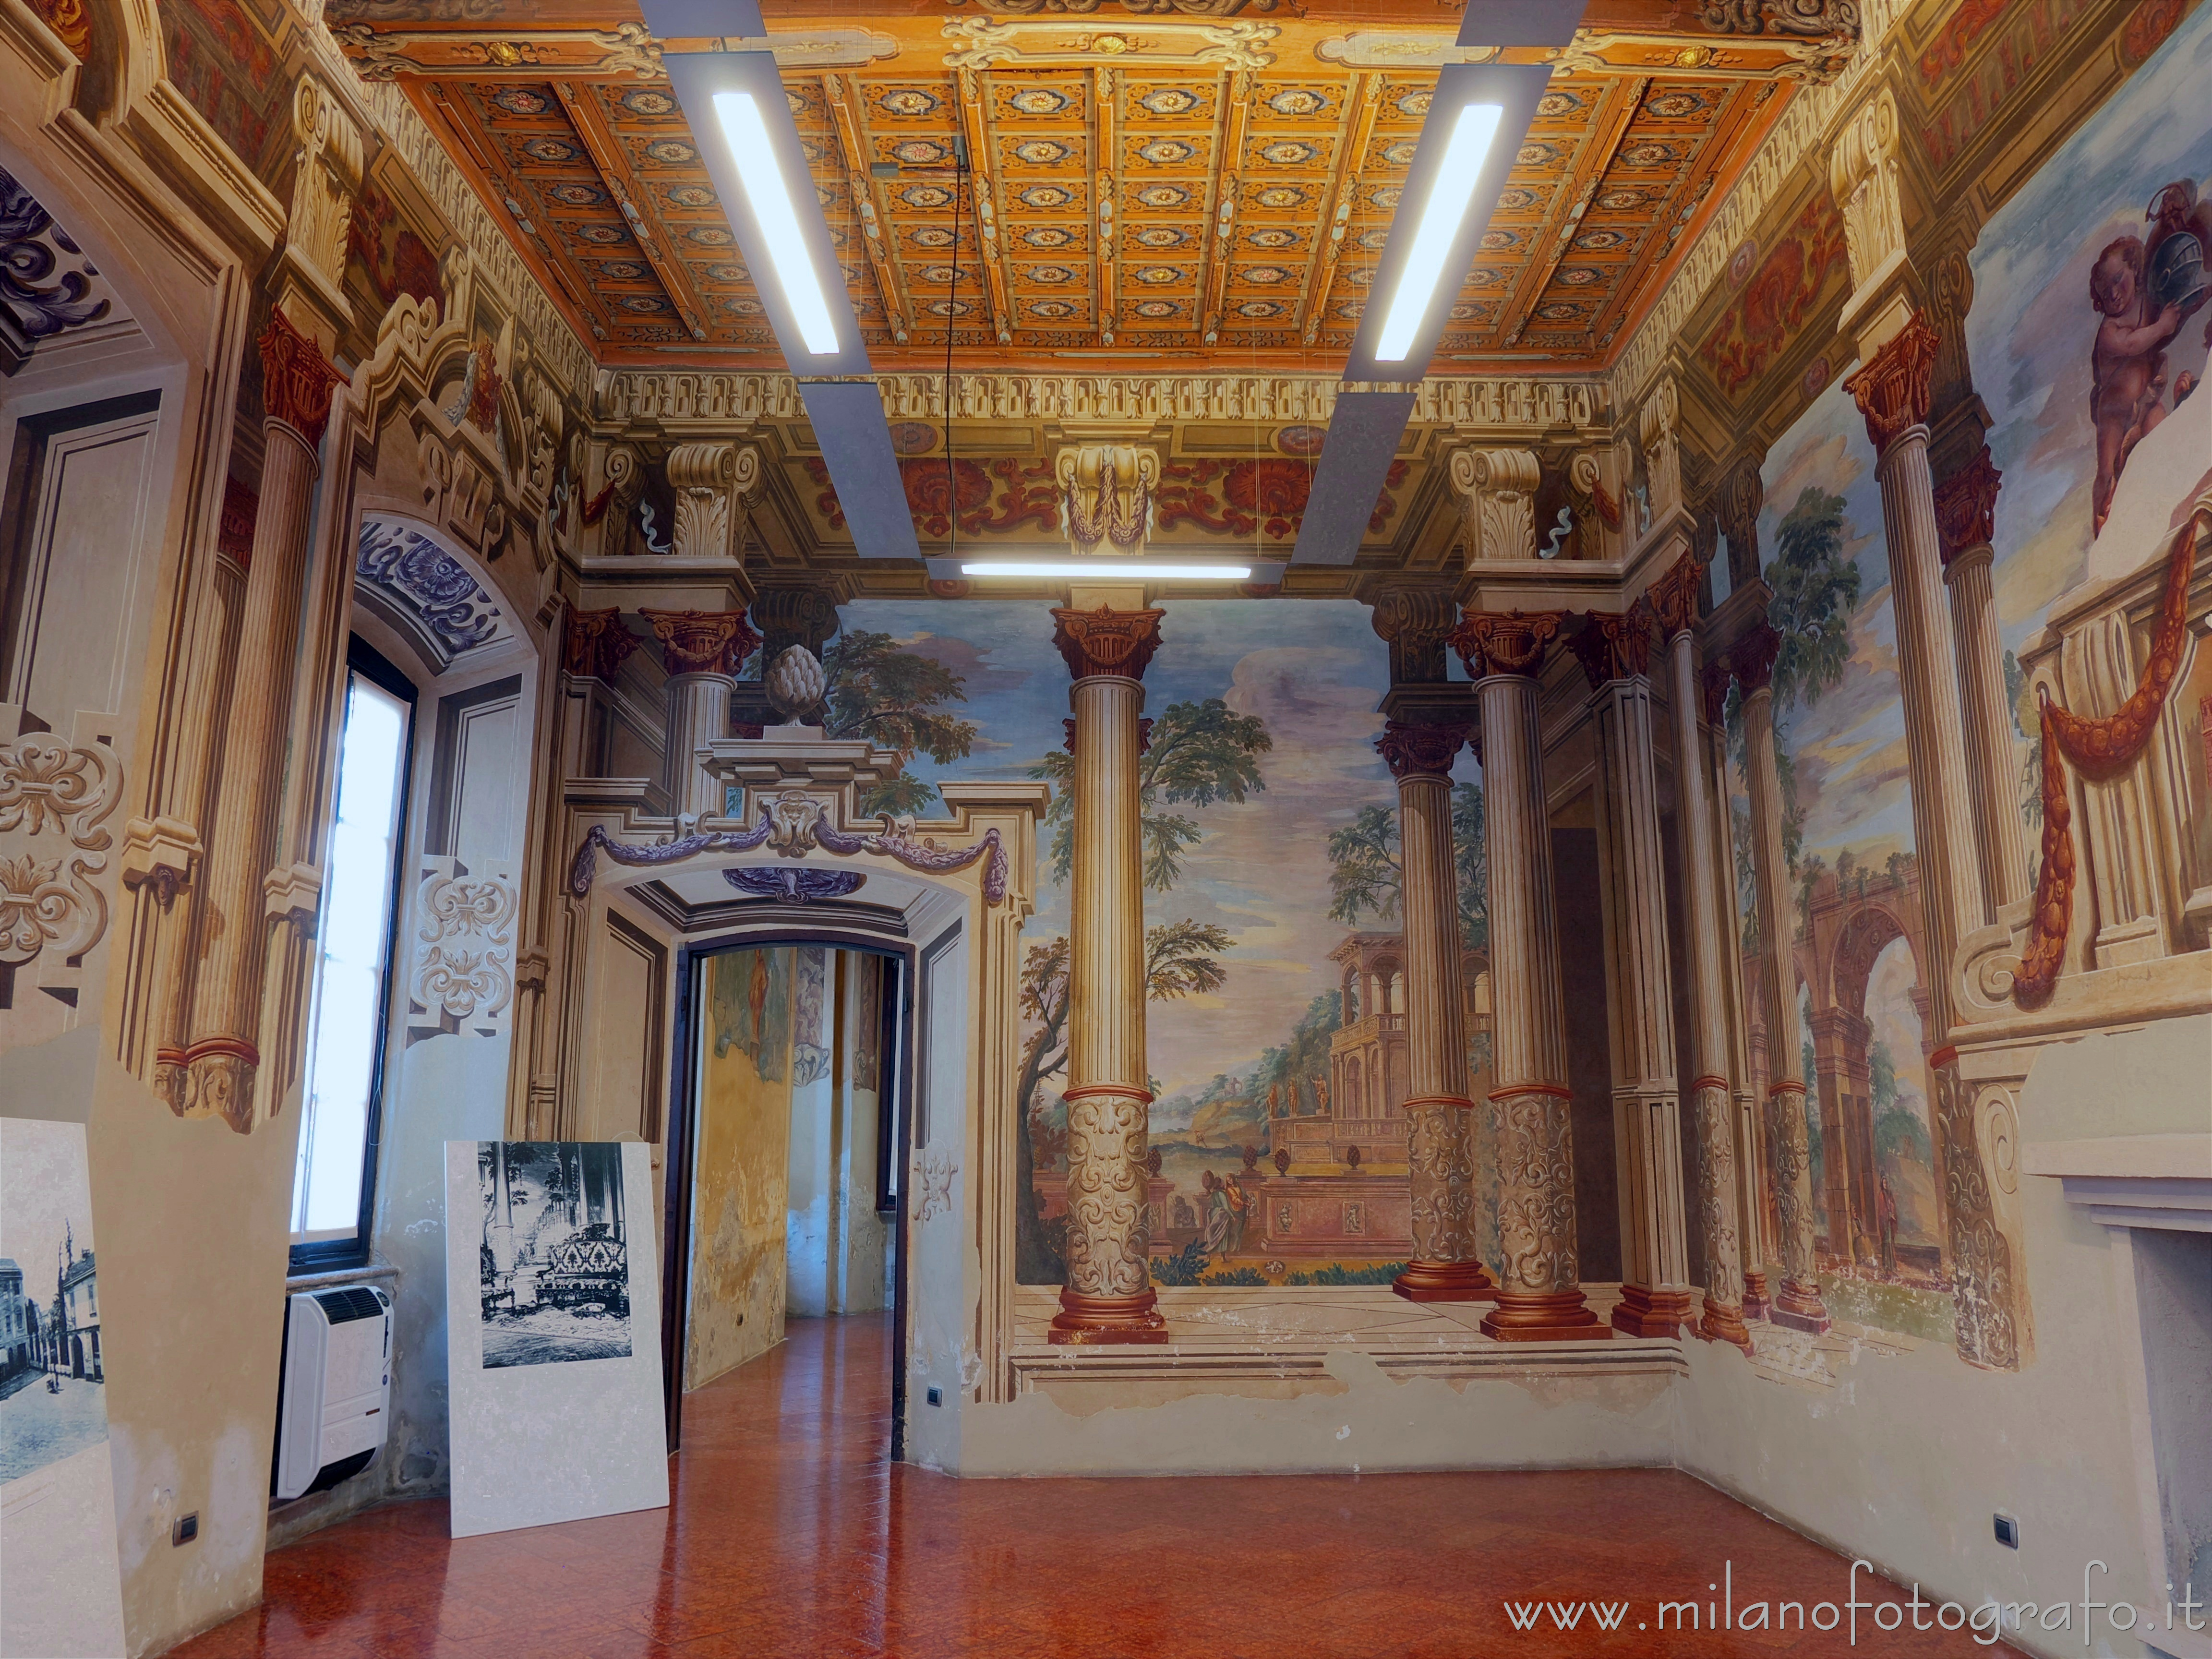 Lissone (Milan, Italy): Hall of the Columns in Villa Baldironi Reati - Lissone (Milan, Italy)